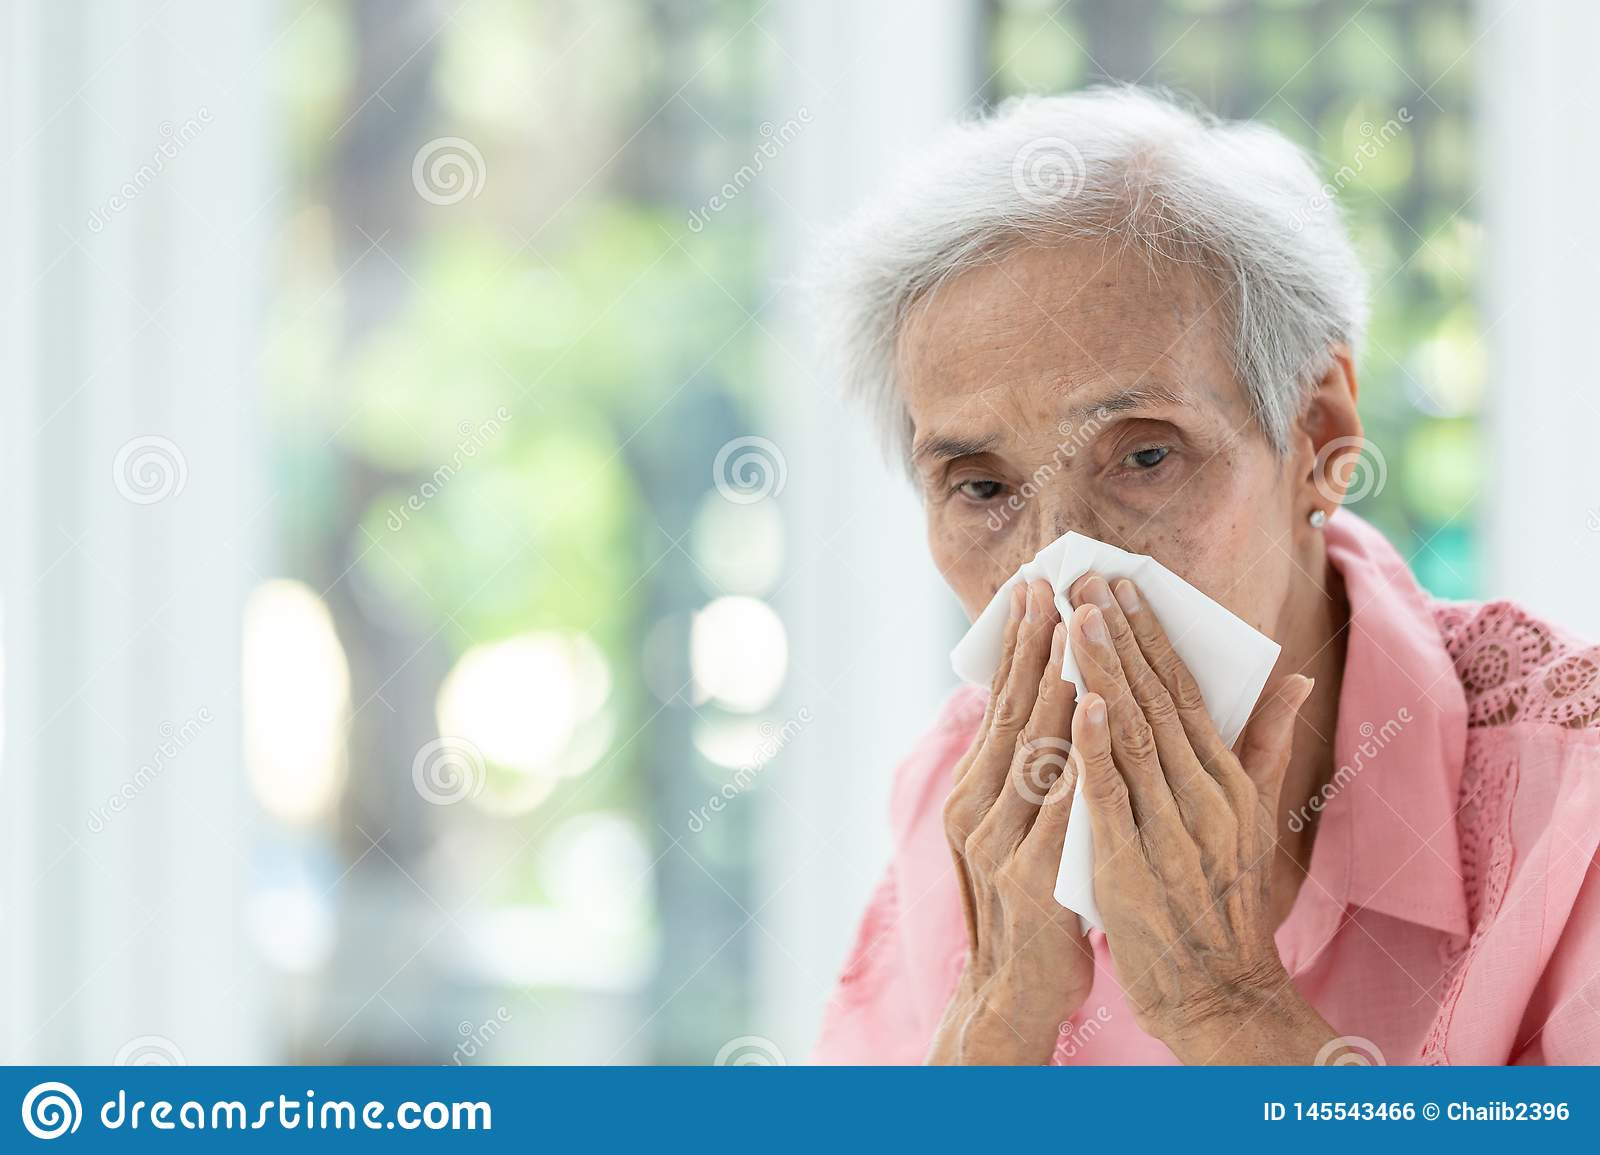 Portrait of elderly woman blowing nose in paper handkerchief,runny nose,Asian senior woman sneezing in a tissue,concept of